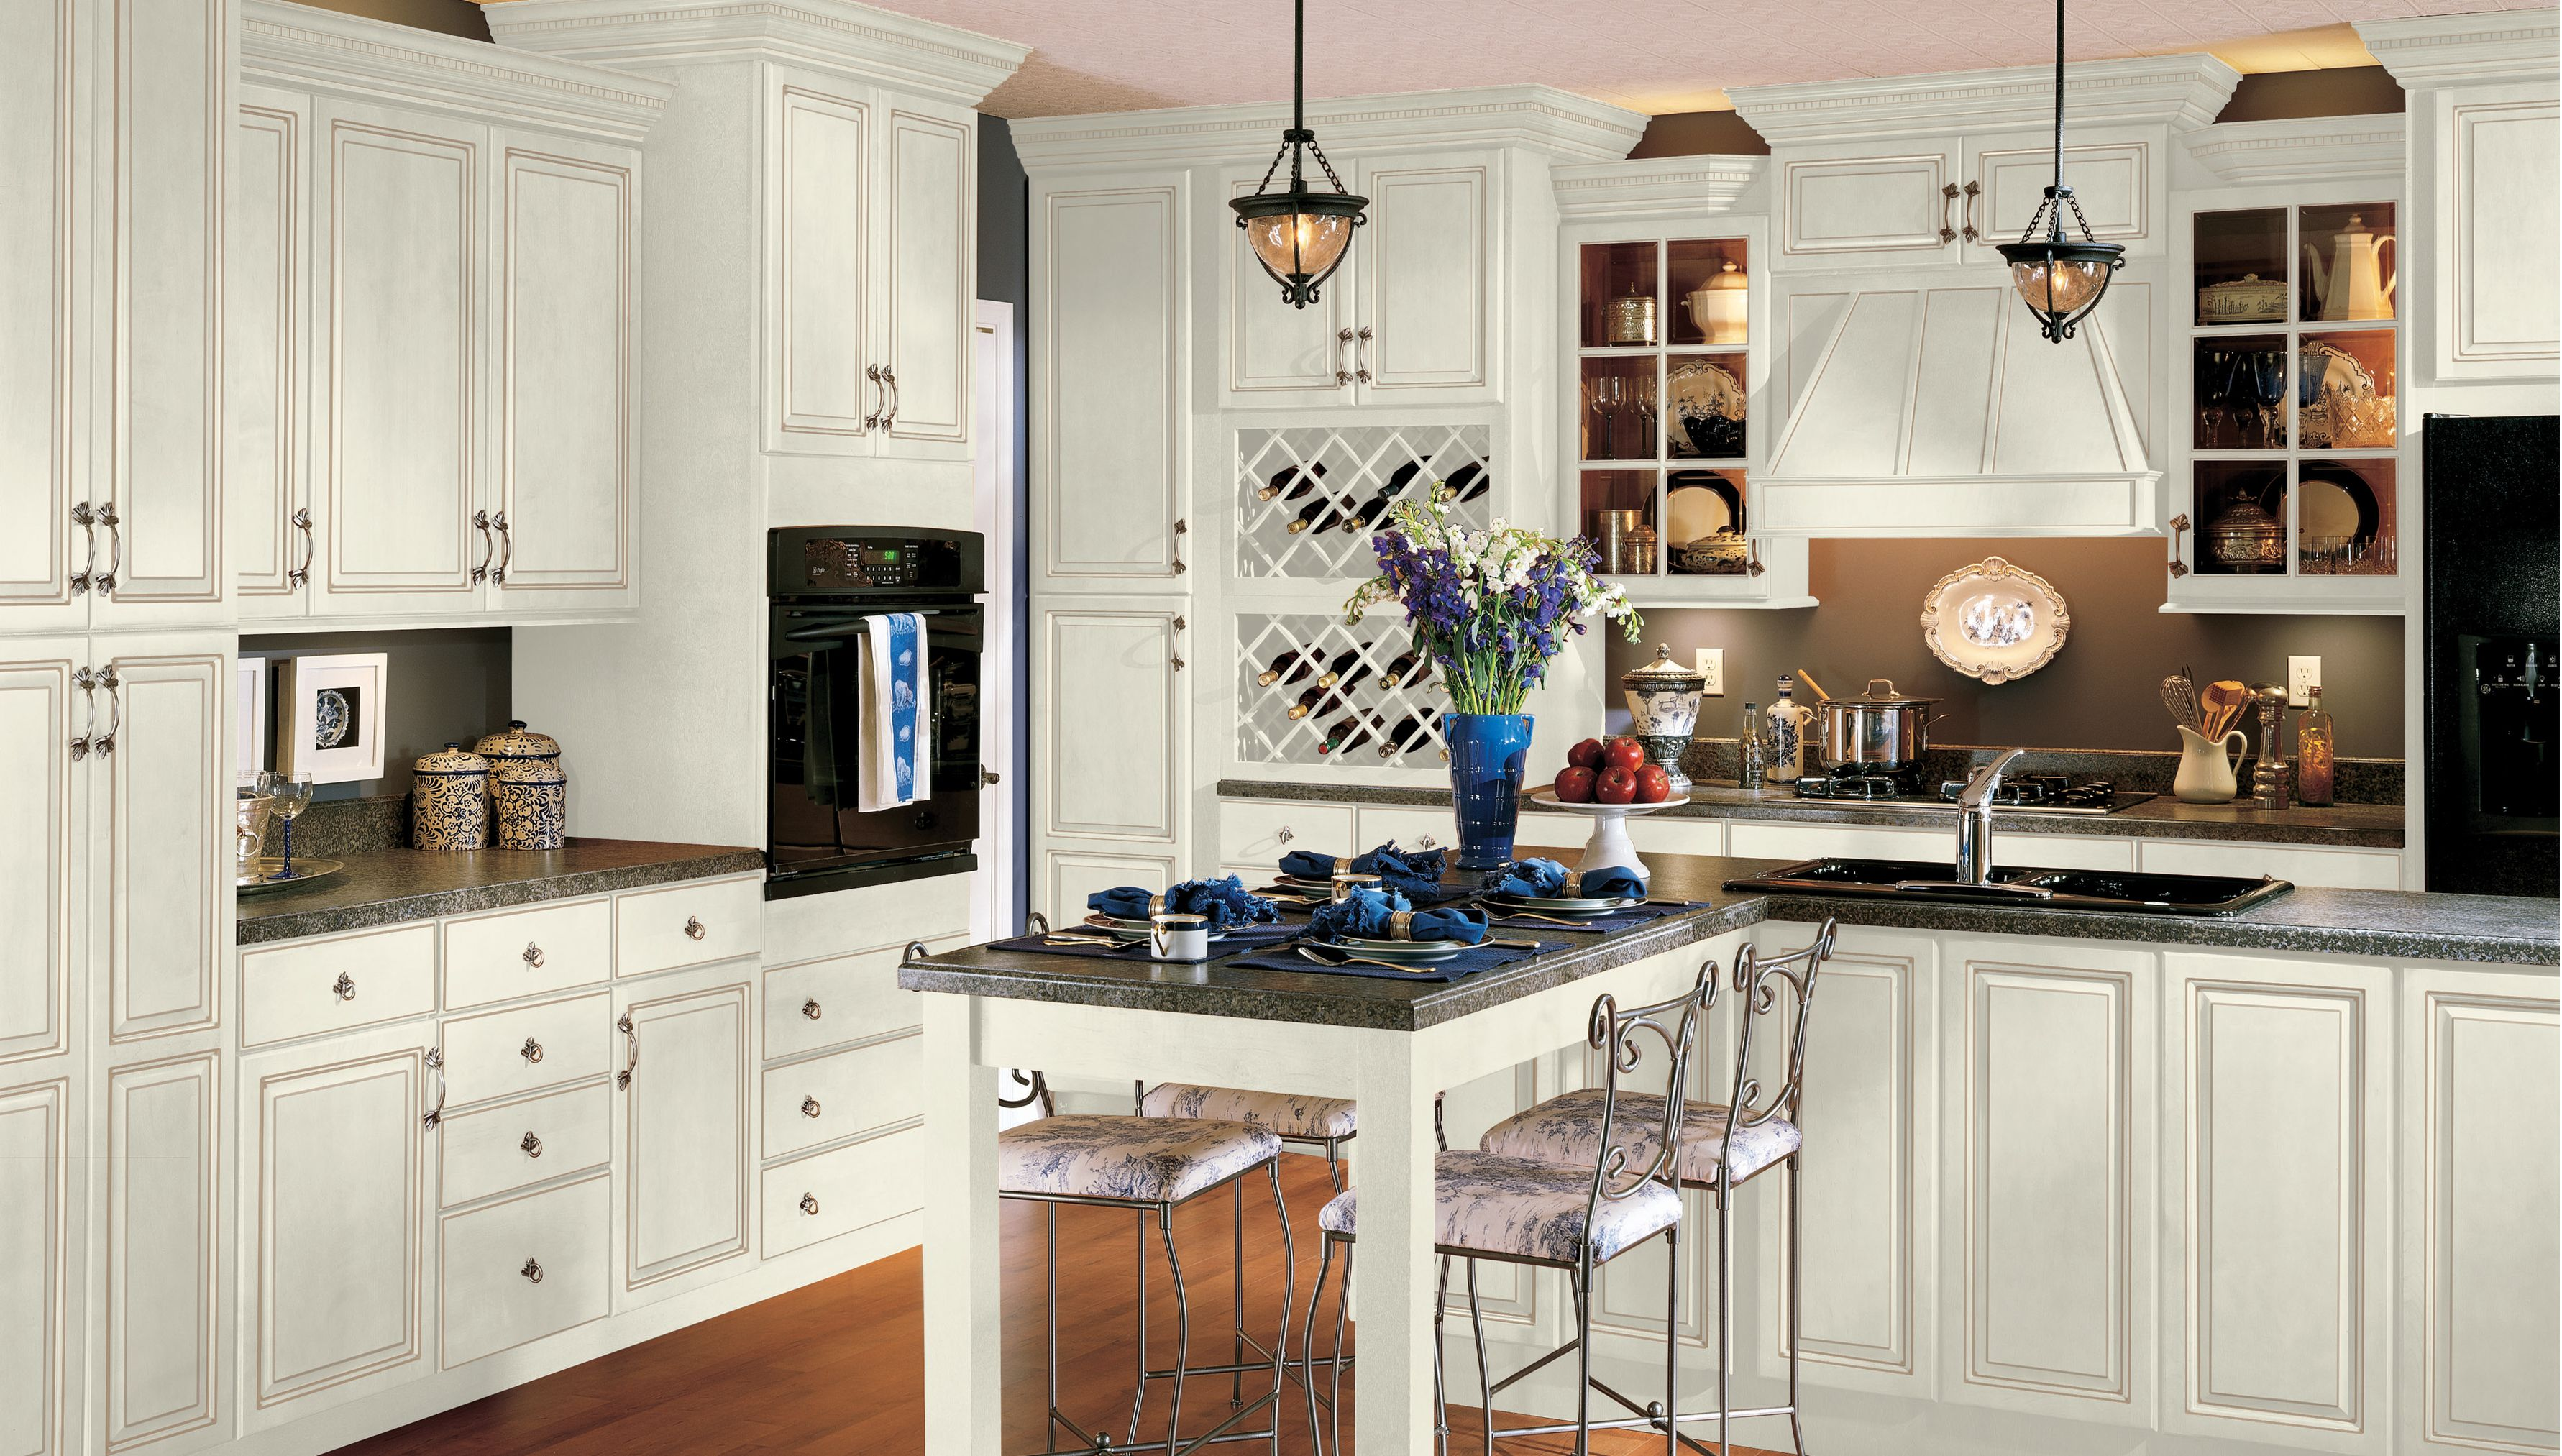 Benton Shaker Style Cabinet Doors Offer Broad Appeal At An